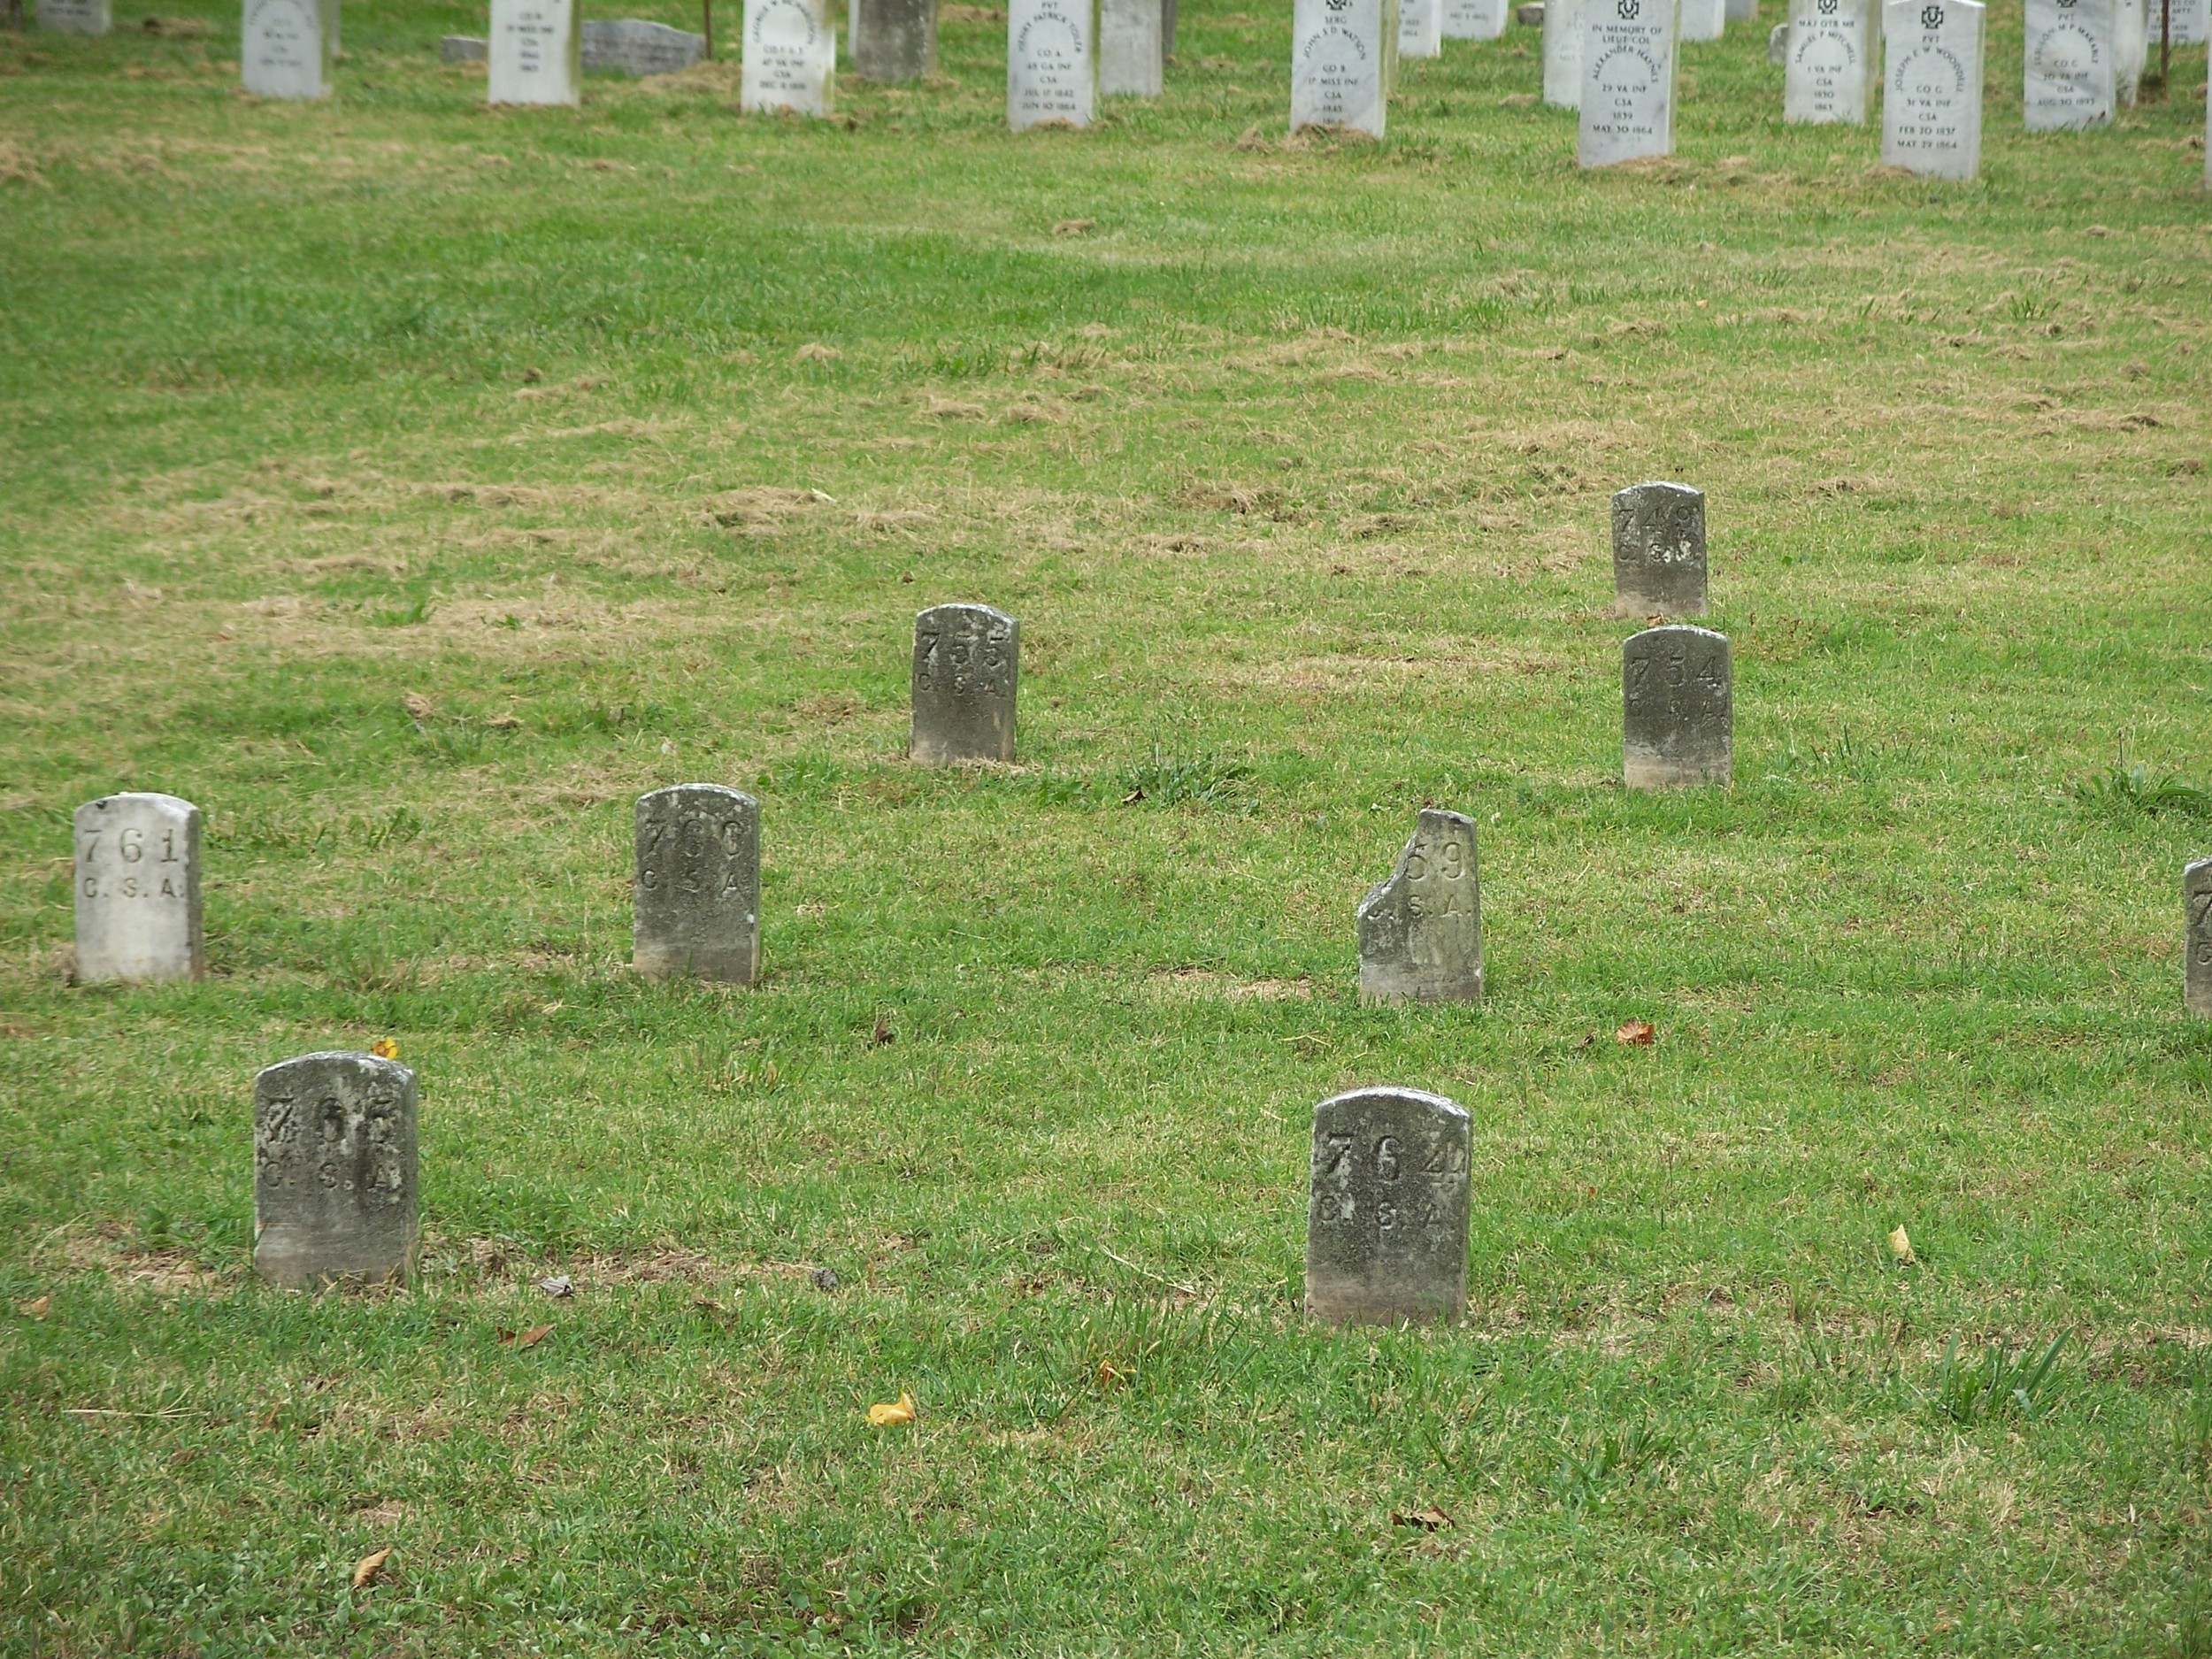 The Confederate section of Hollywood Cemetery contains a mixture of identified and unidentified graves.